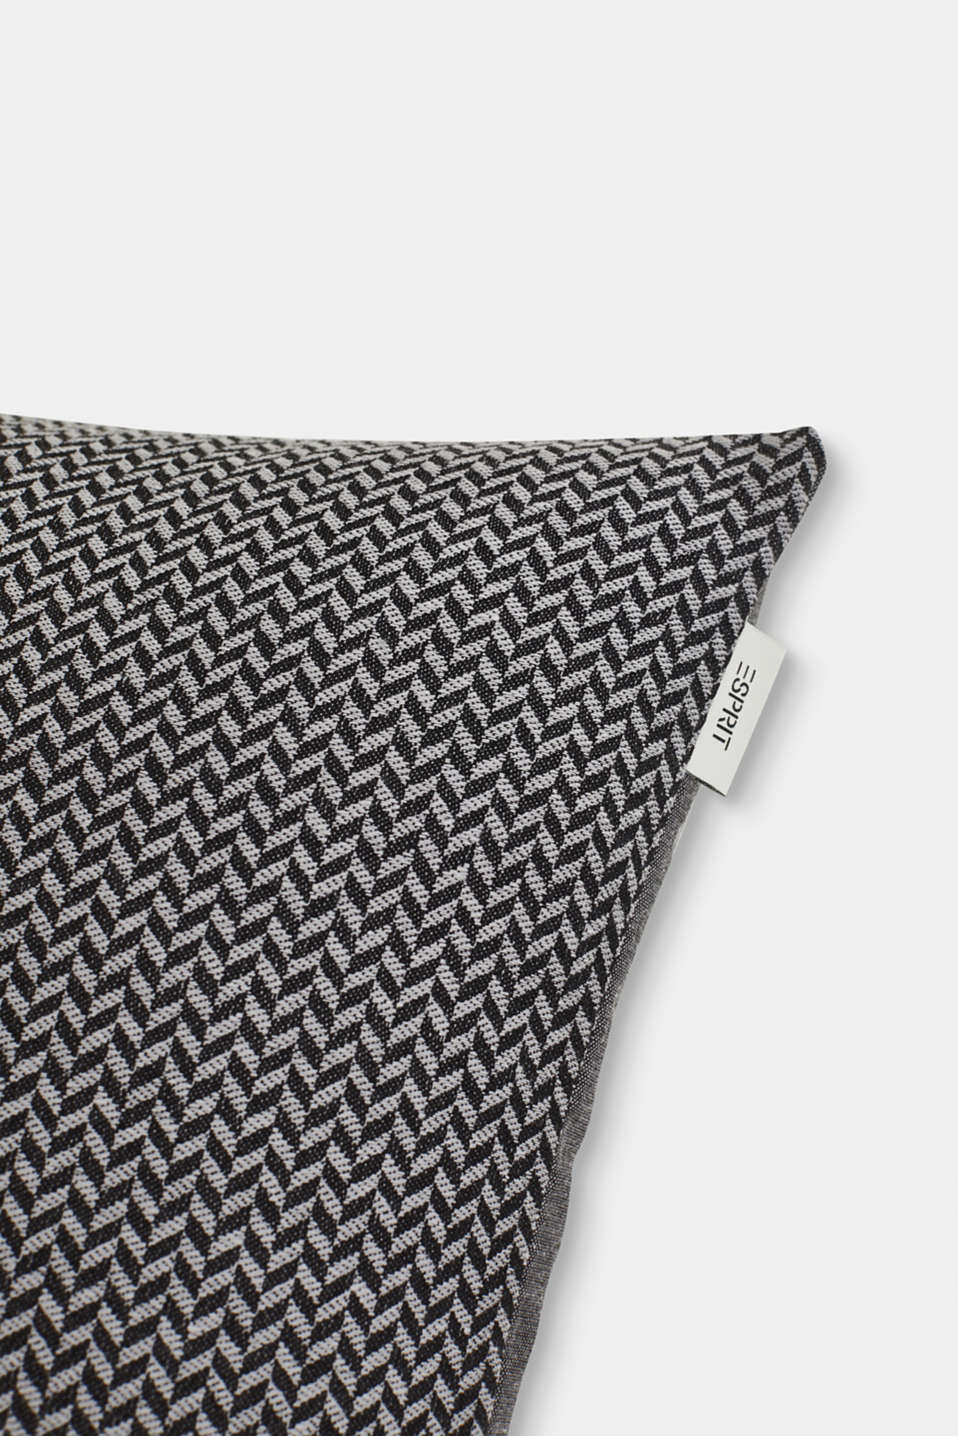 Cushion cover with a herringbone texture, ANTHRAZIT, detail image number 1